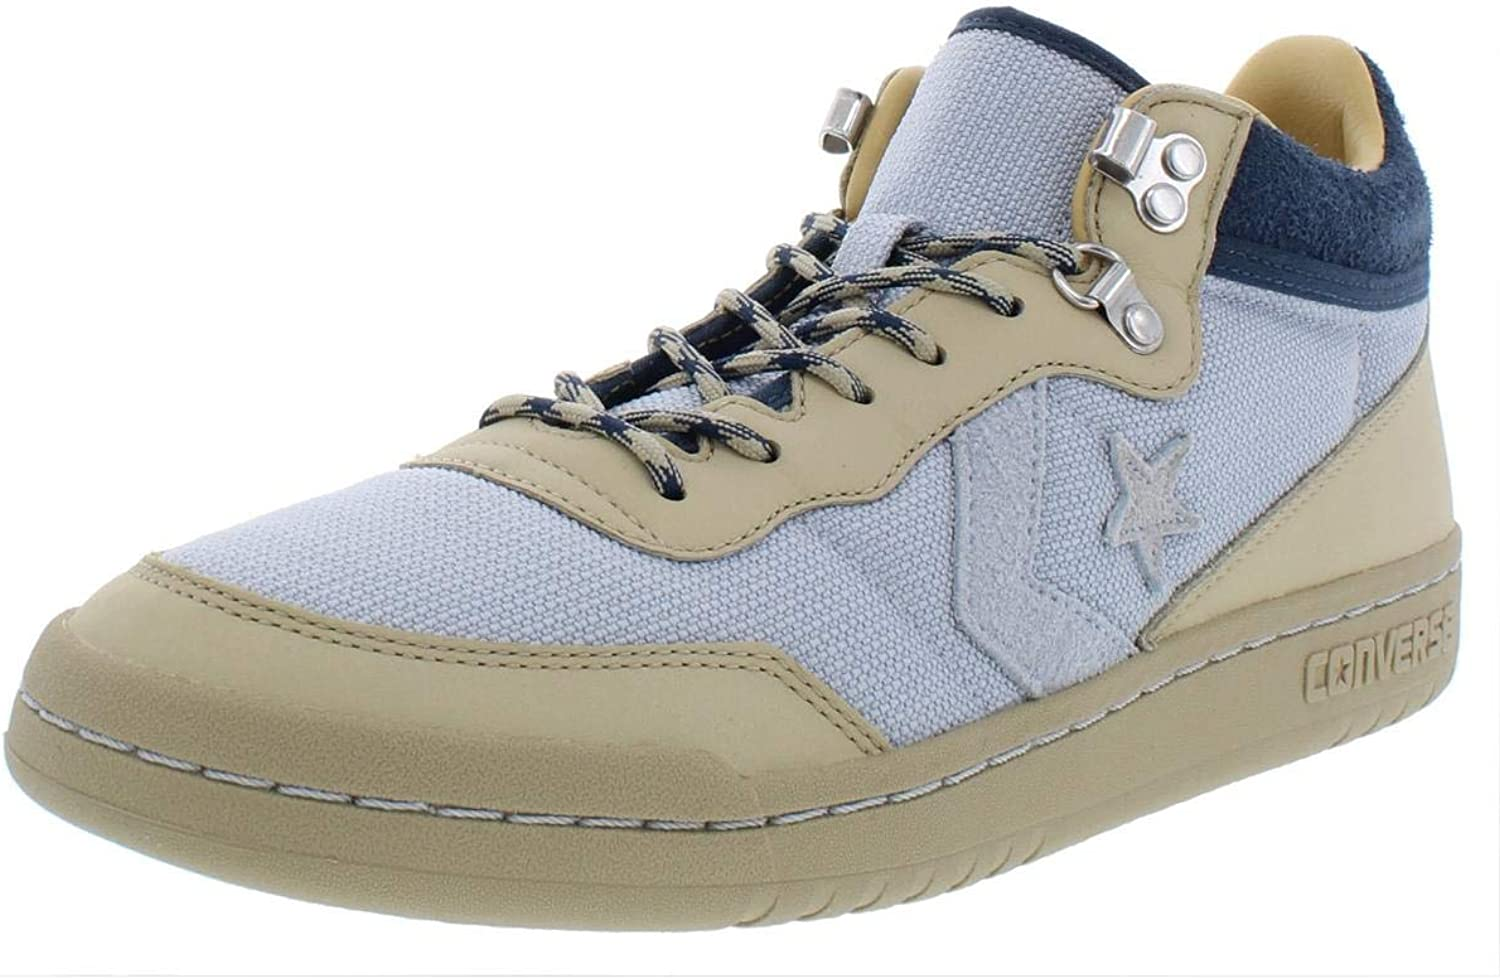 Converse Mens Fastbreak Mid Leather Lifestyle Fashion Sneakers